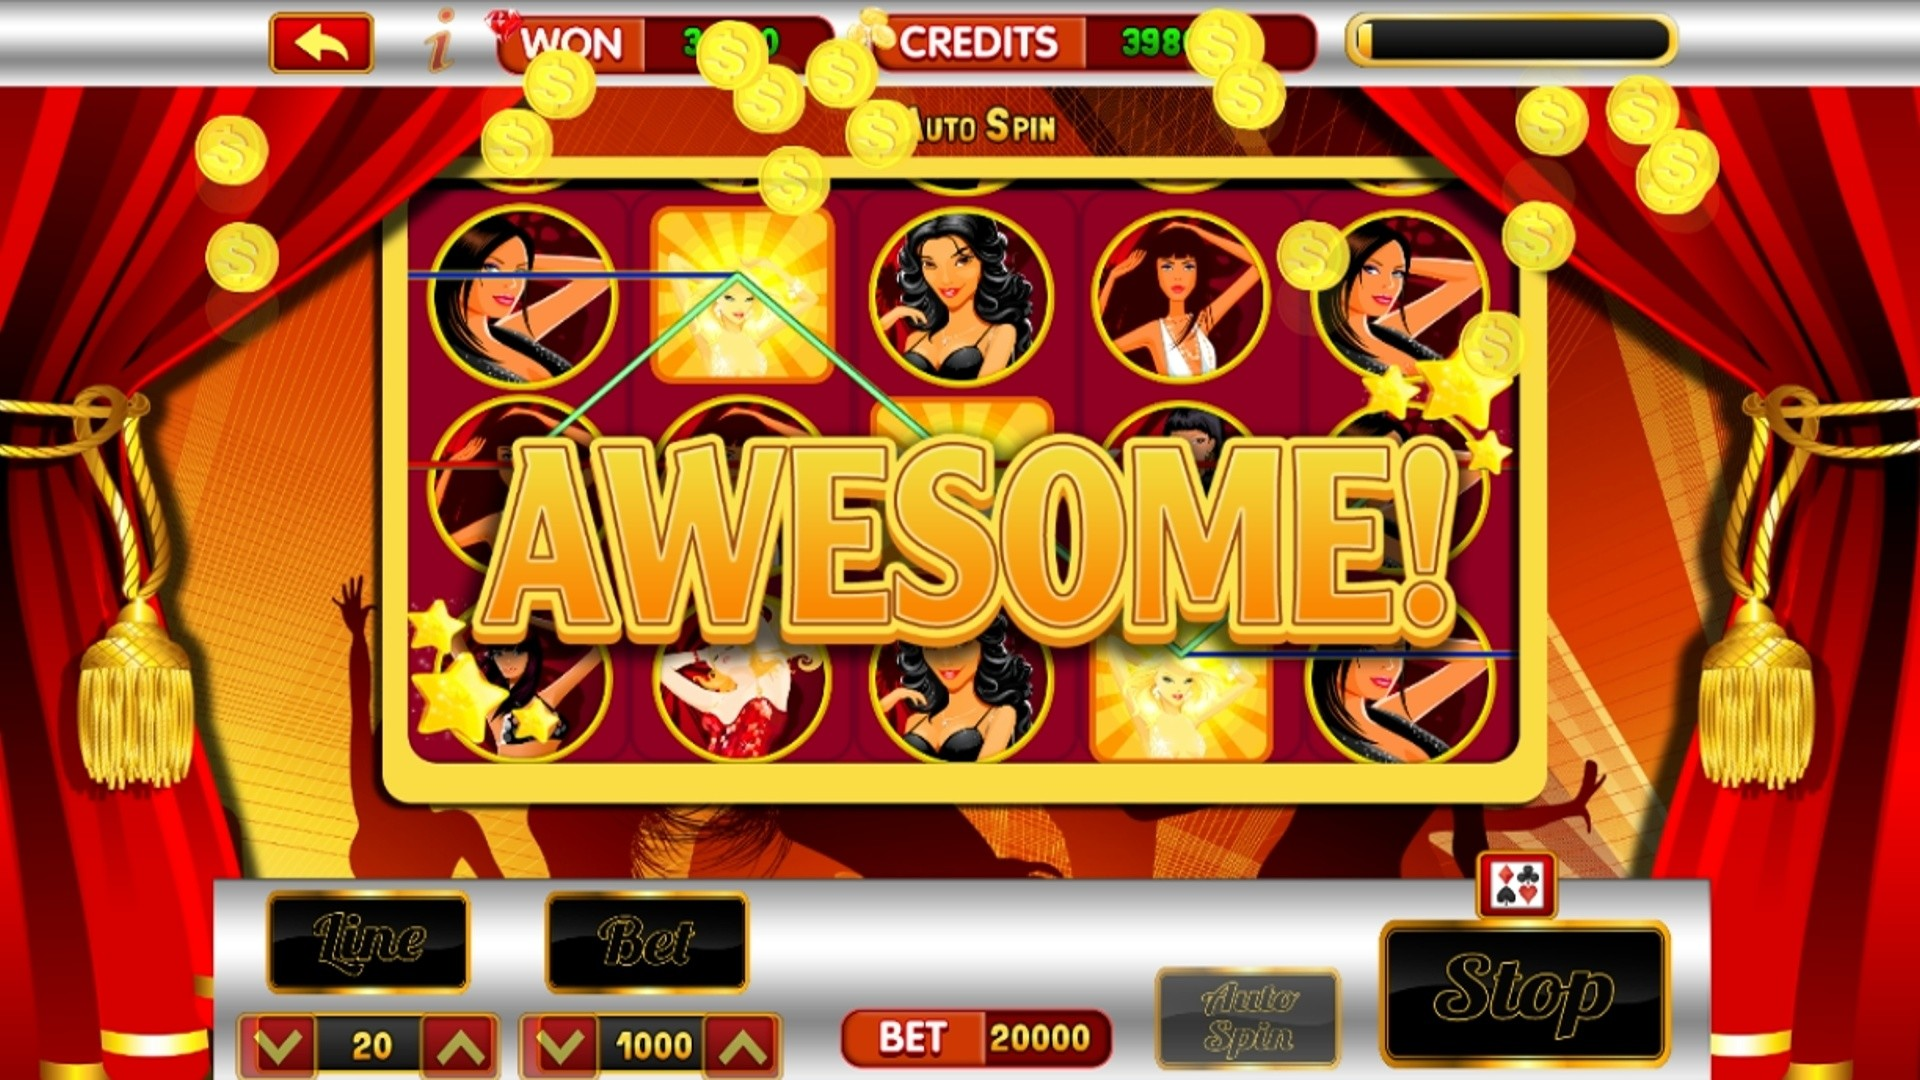 Giochi casino gratis slot machine